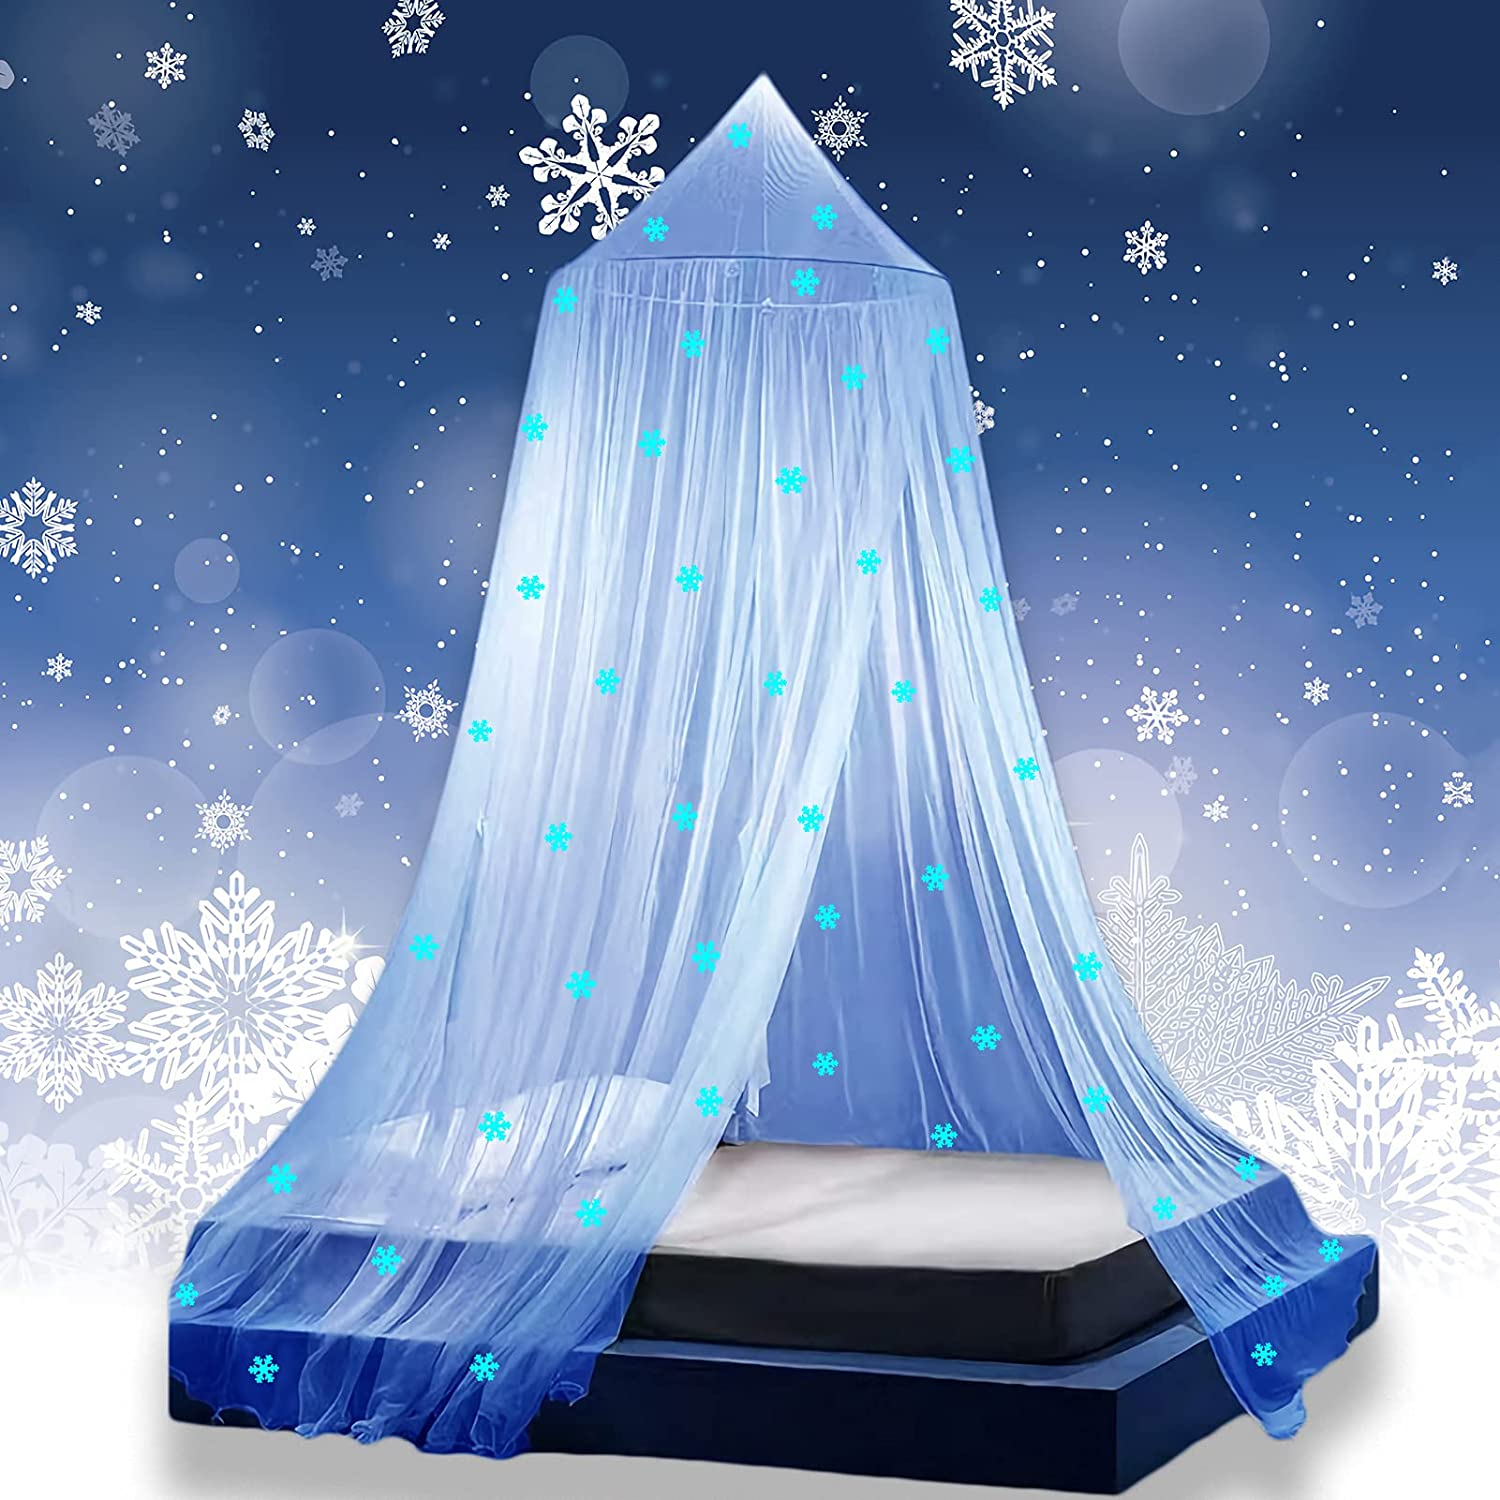 Princess Girls Bed Canopy with Glow in The Dark Snowflakes, Freezing Bed Canopy for Girls Room Decor by Eimilaly, Encrypted Fabric, Blue